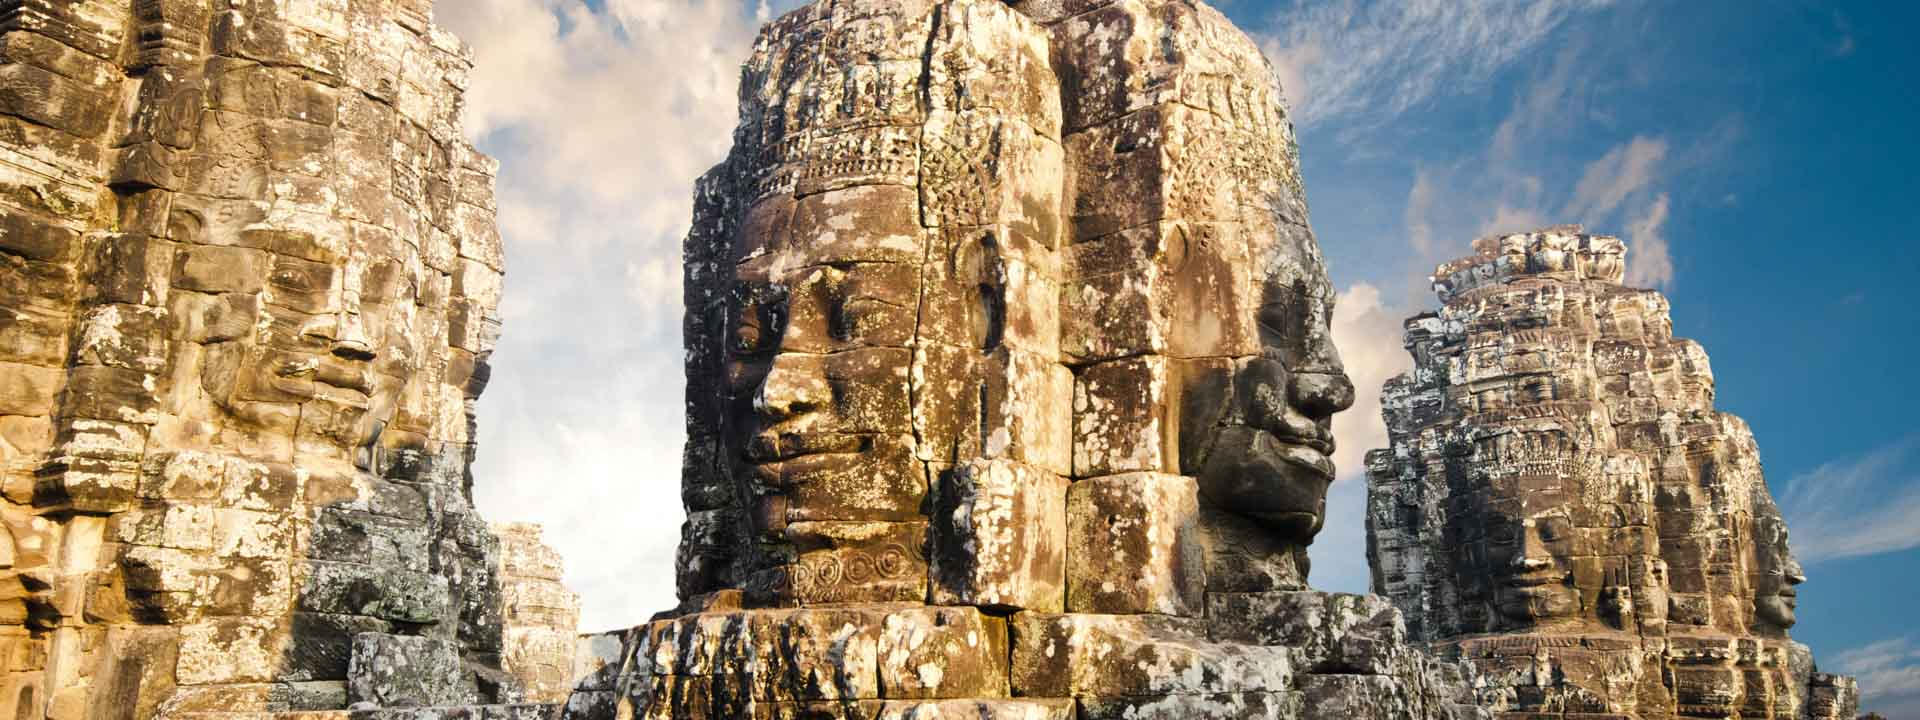 Signature Luxurious Experiences in Cambodia in 10 days